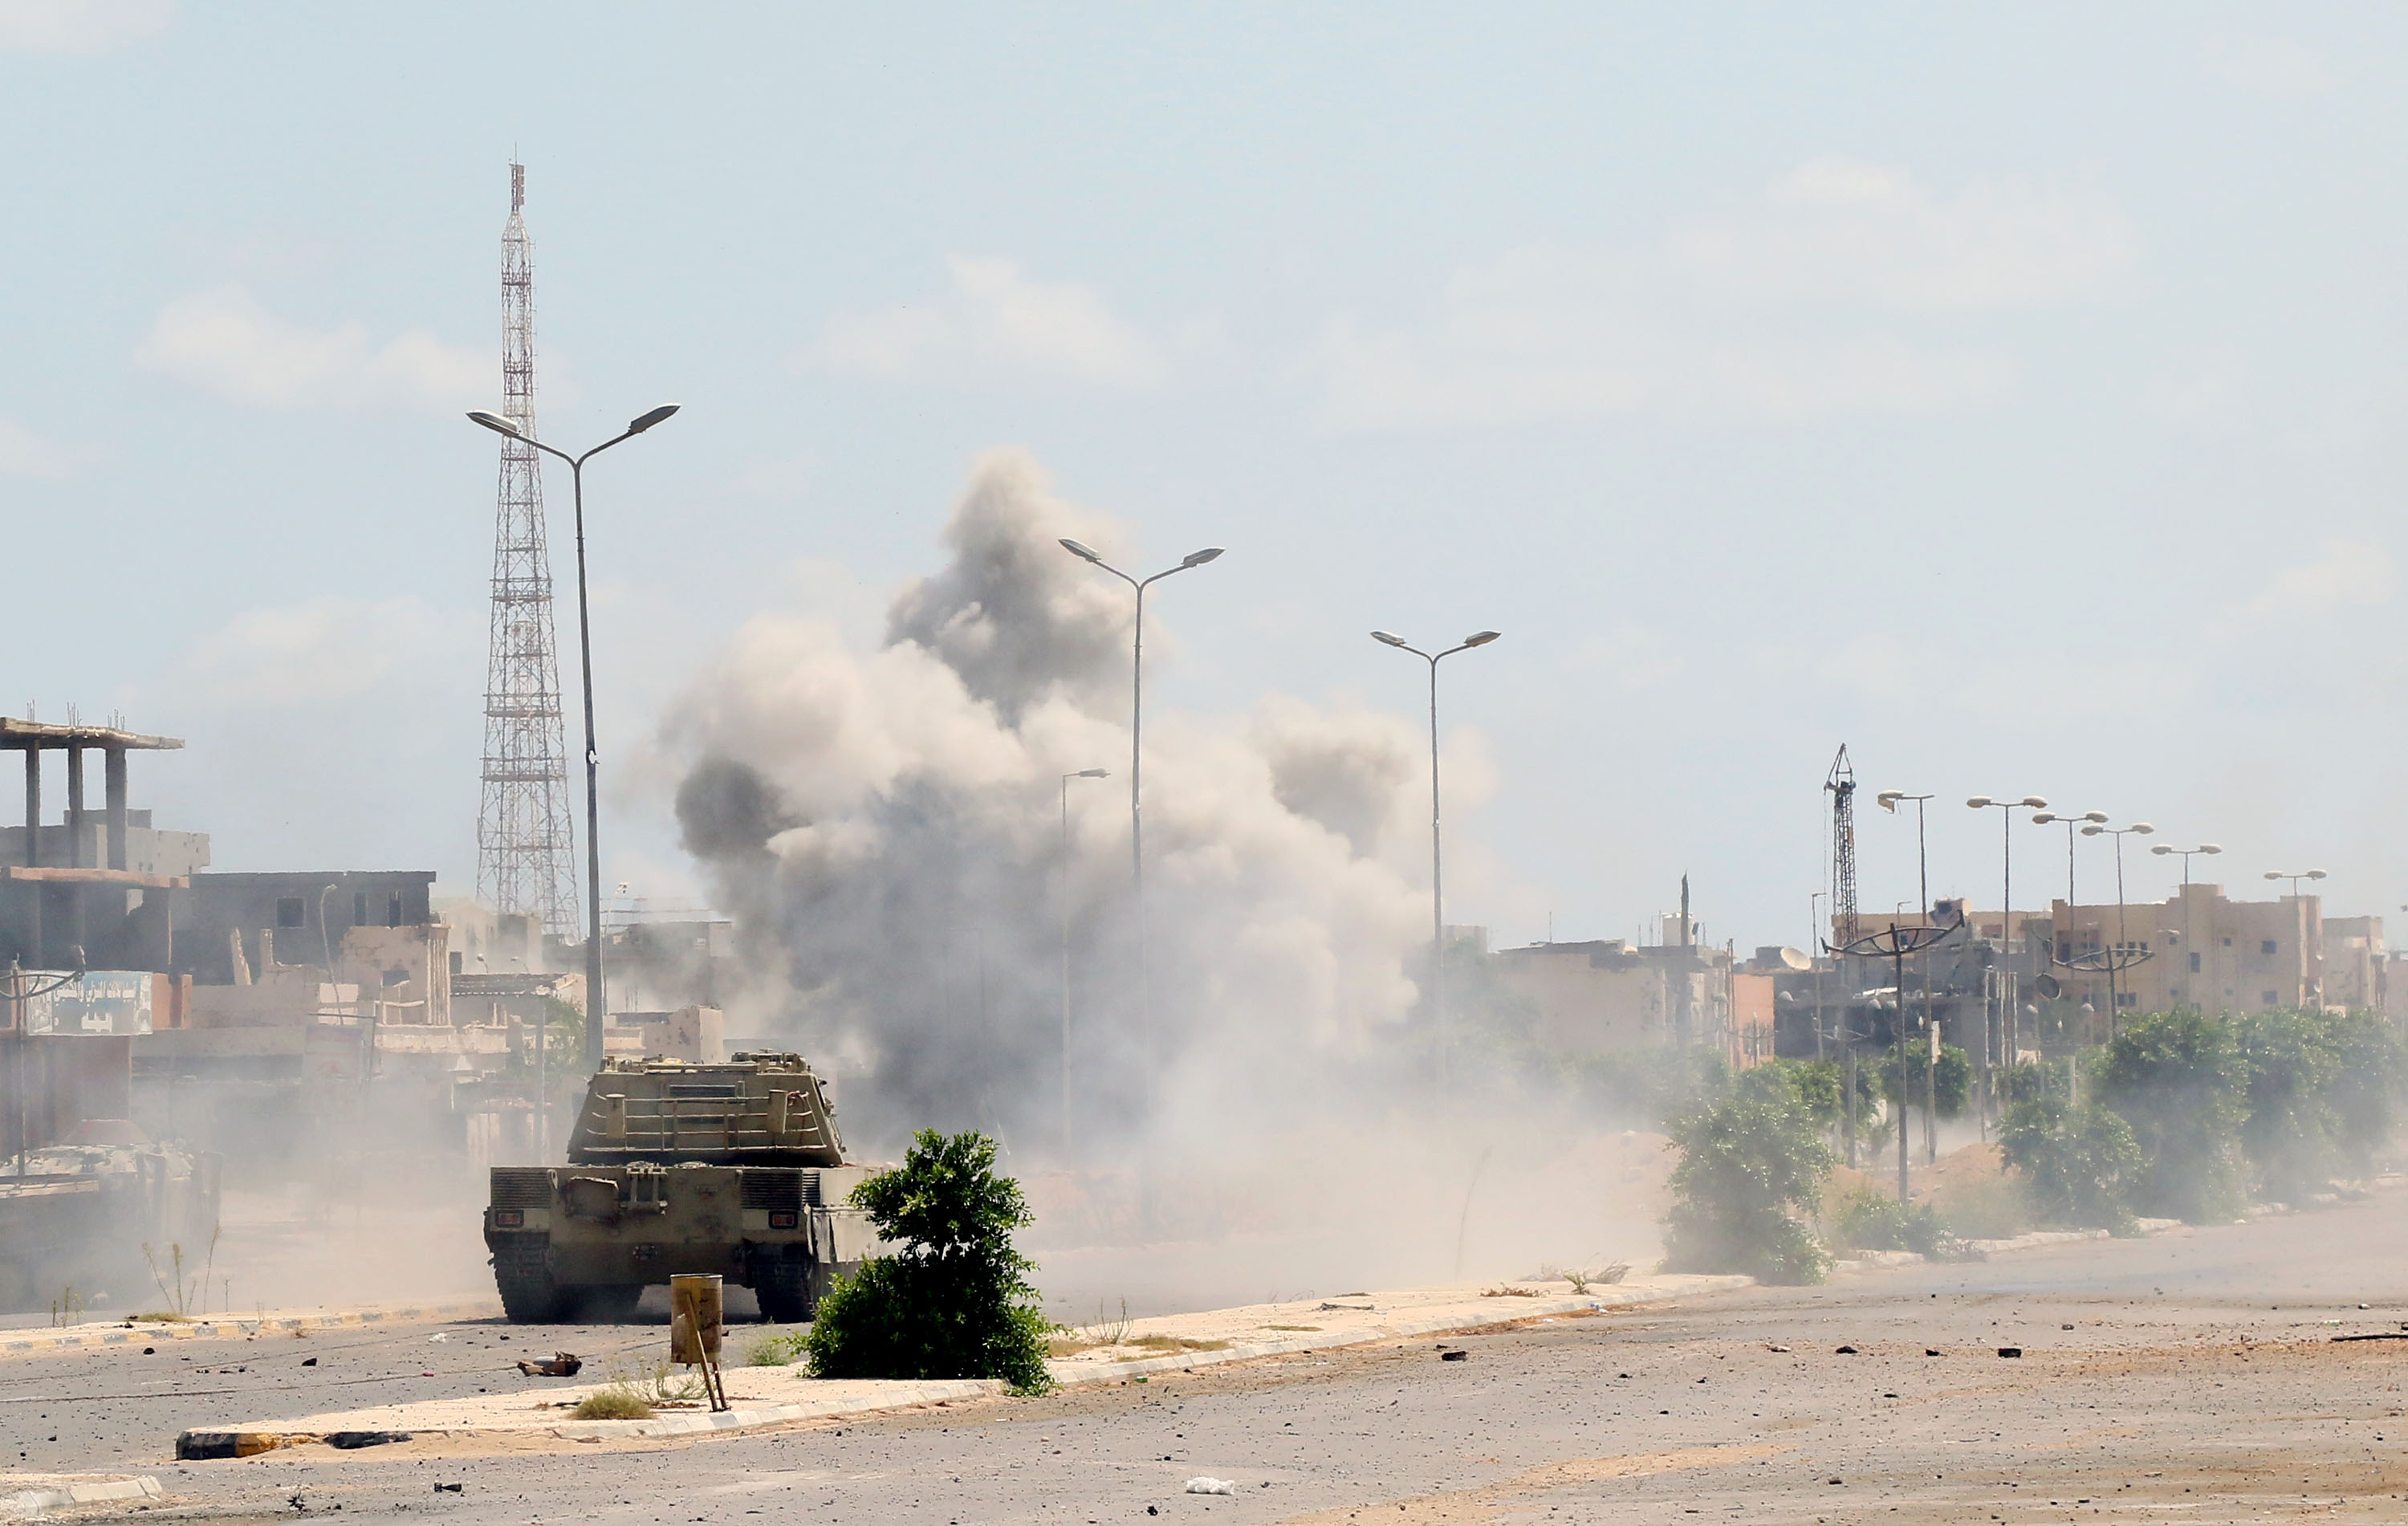 Forces loyal to Libya's UN-backed Government of National Accord (GNA) drive their military vehicle in al-Zaafaran neighbourhood as they fight Islamic State group (IS) jihadists holed up in residential district two on August 14, 2016 in Sirte, east of the capital Tripoli.